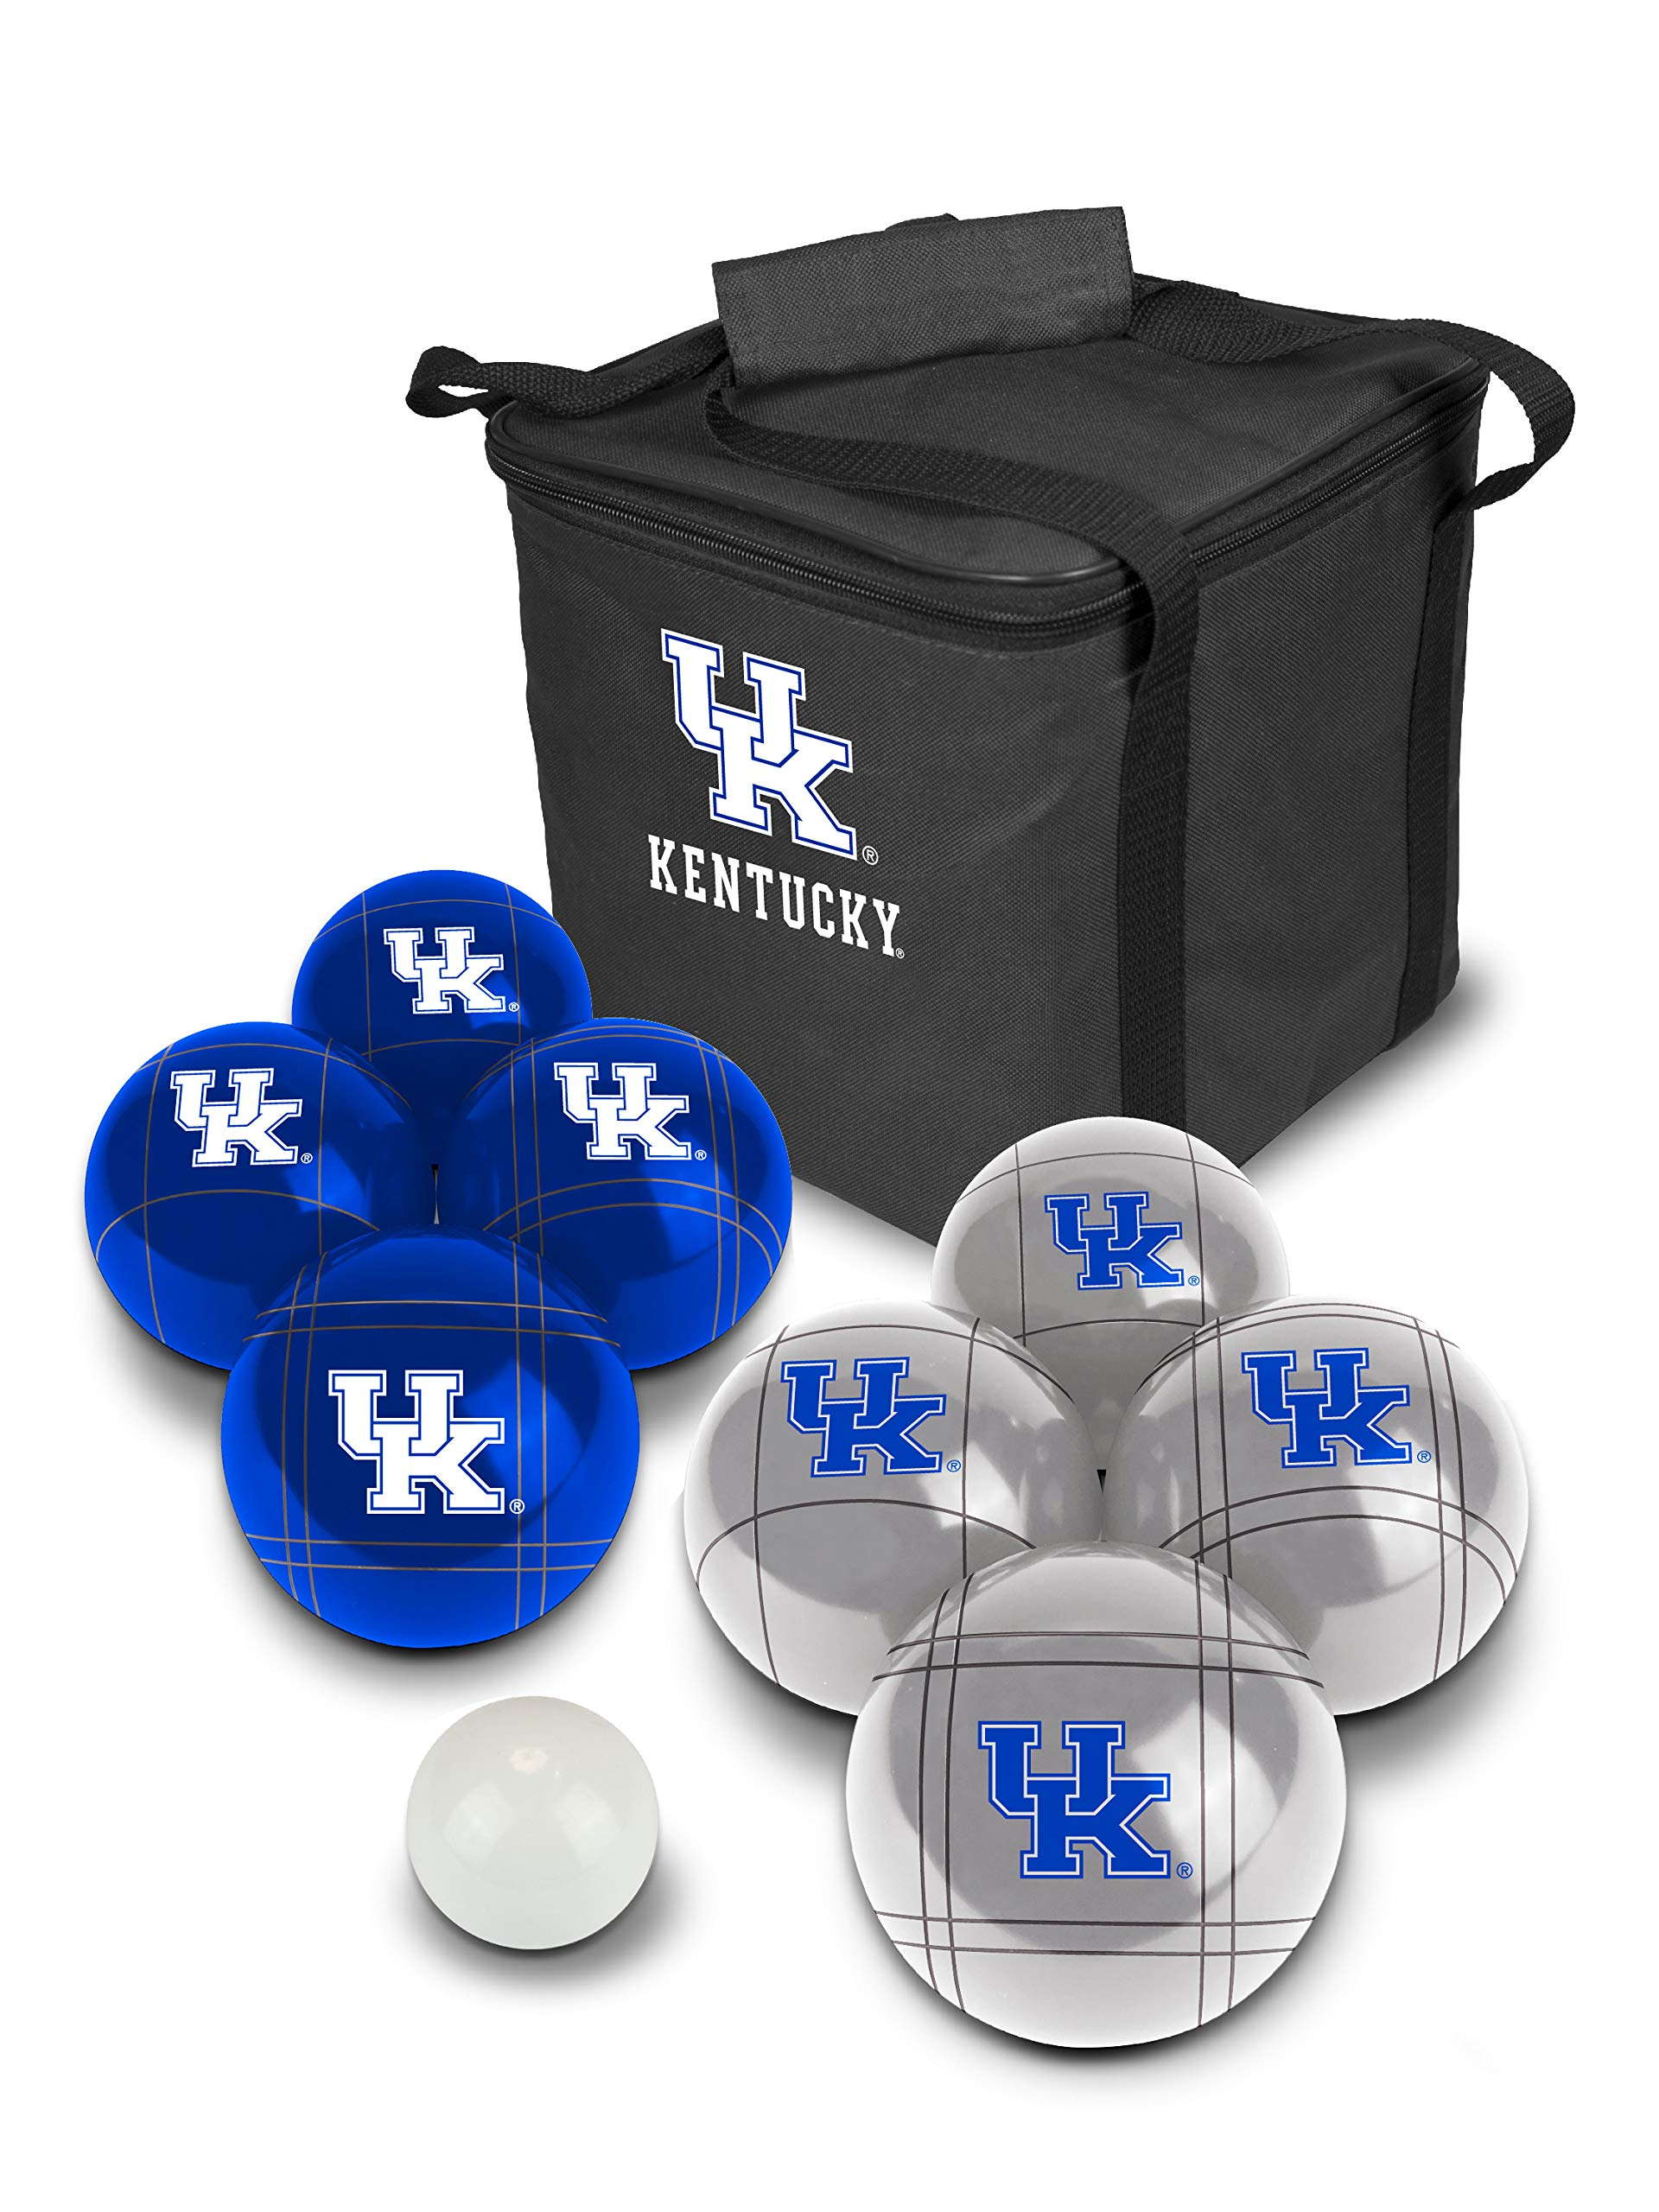 PROLINE NCAA College Kentucky Wildcats Bocce Ball Set by PROLINE (Image #1)